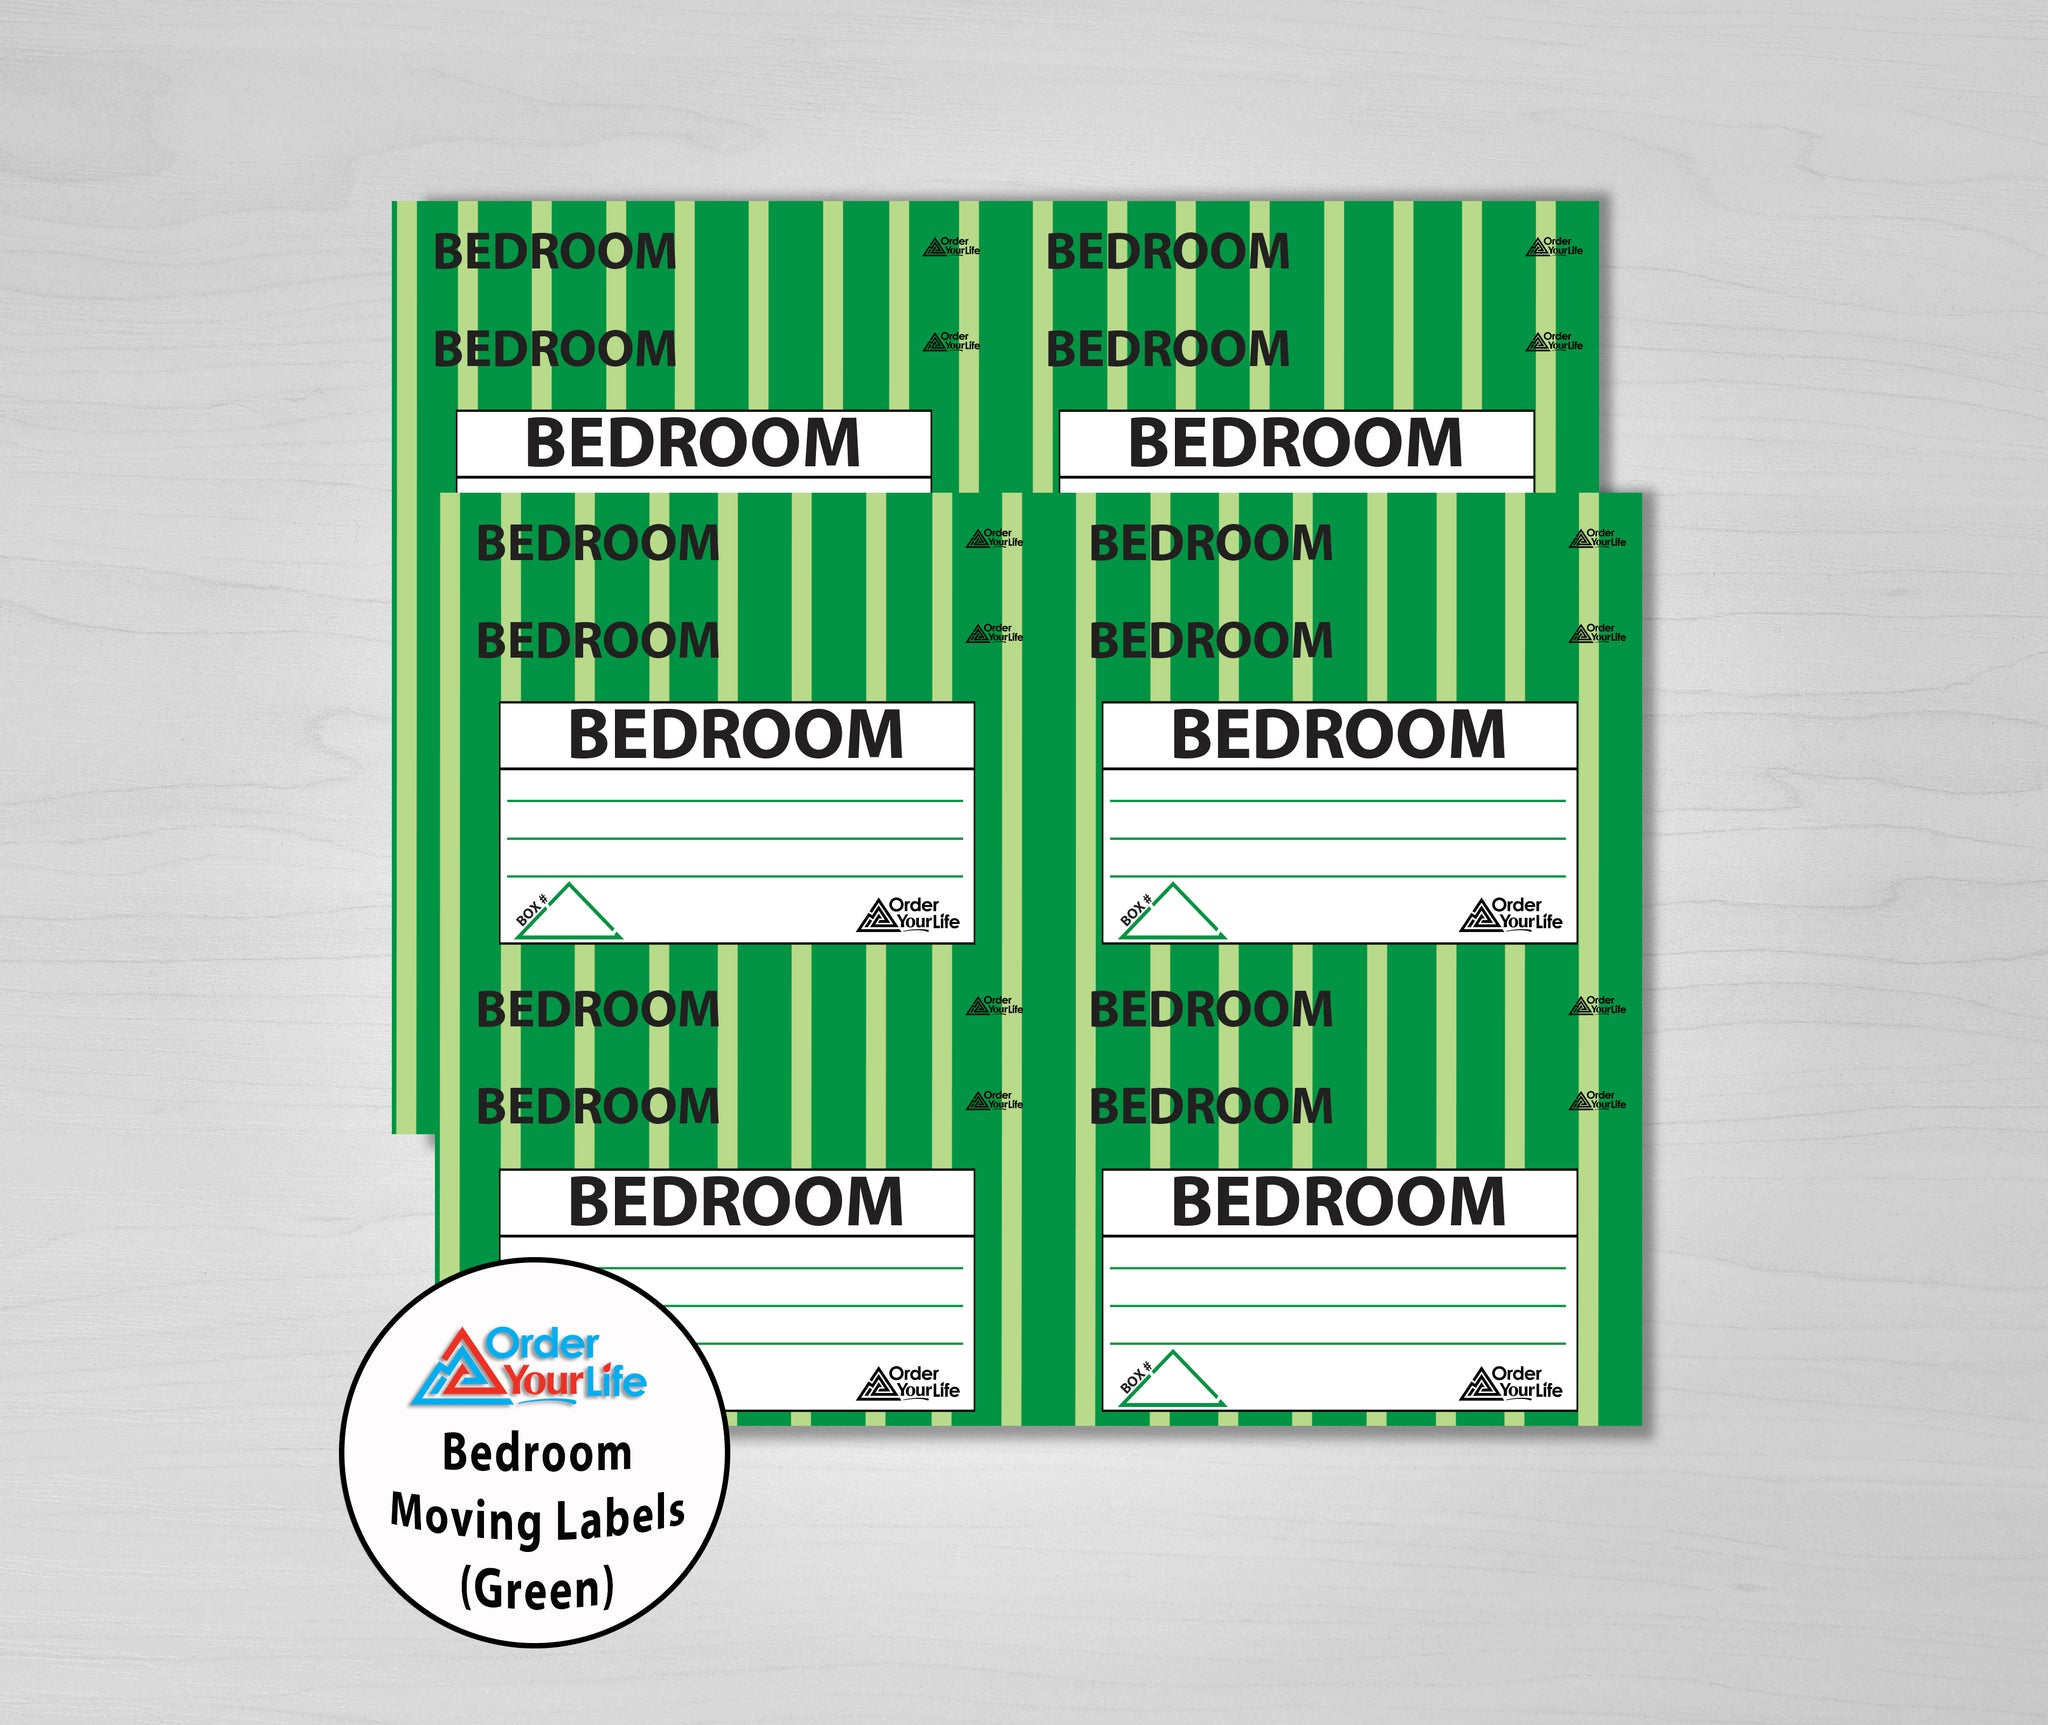 Bedroom Moving Labels (Green)